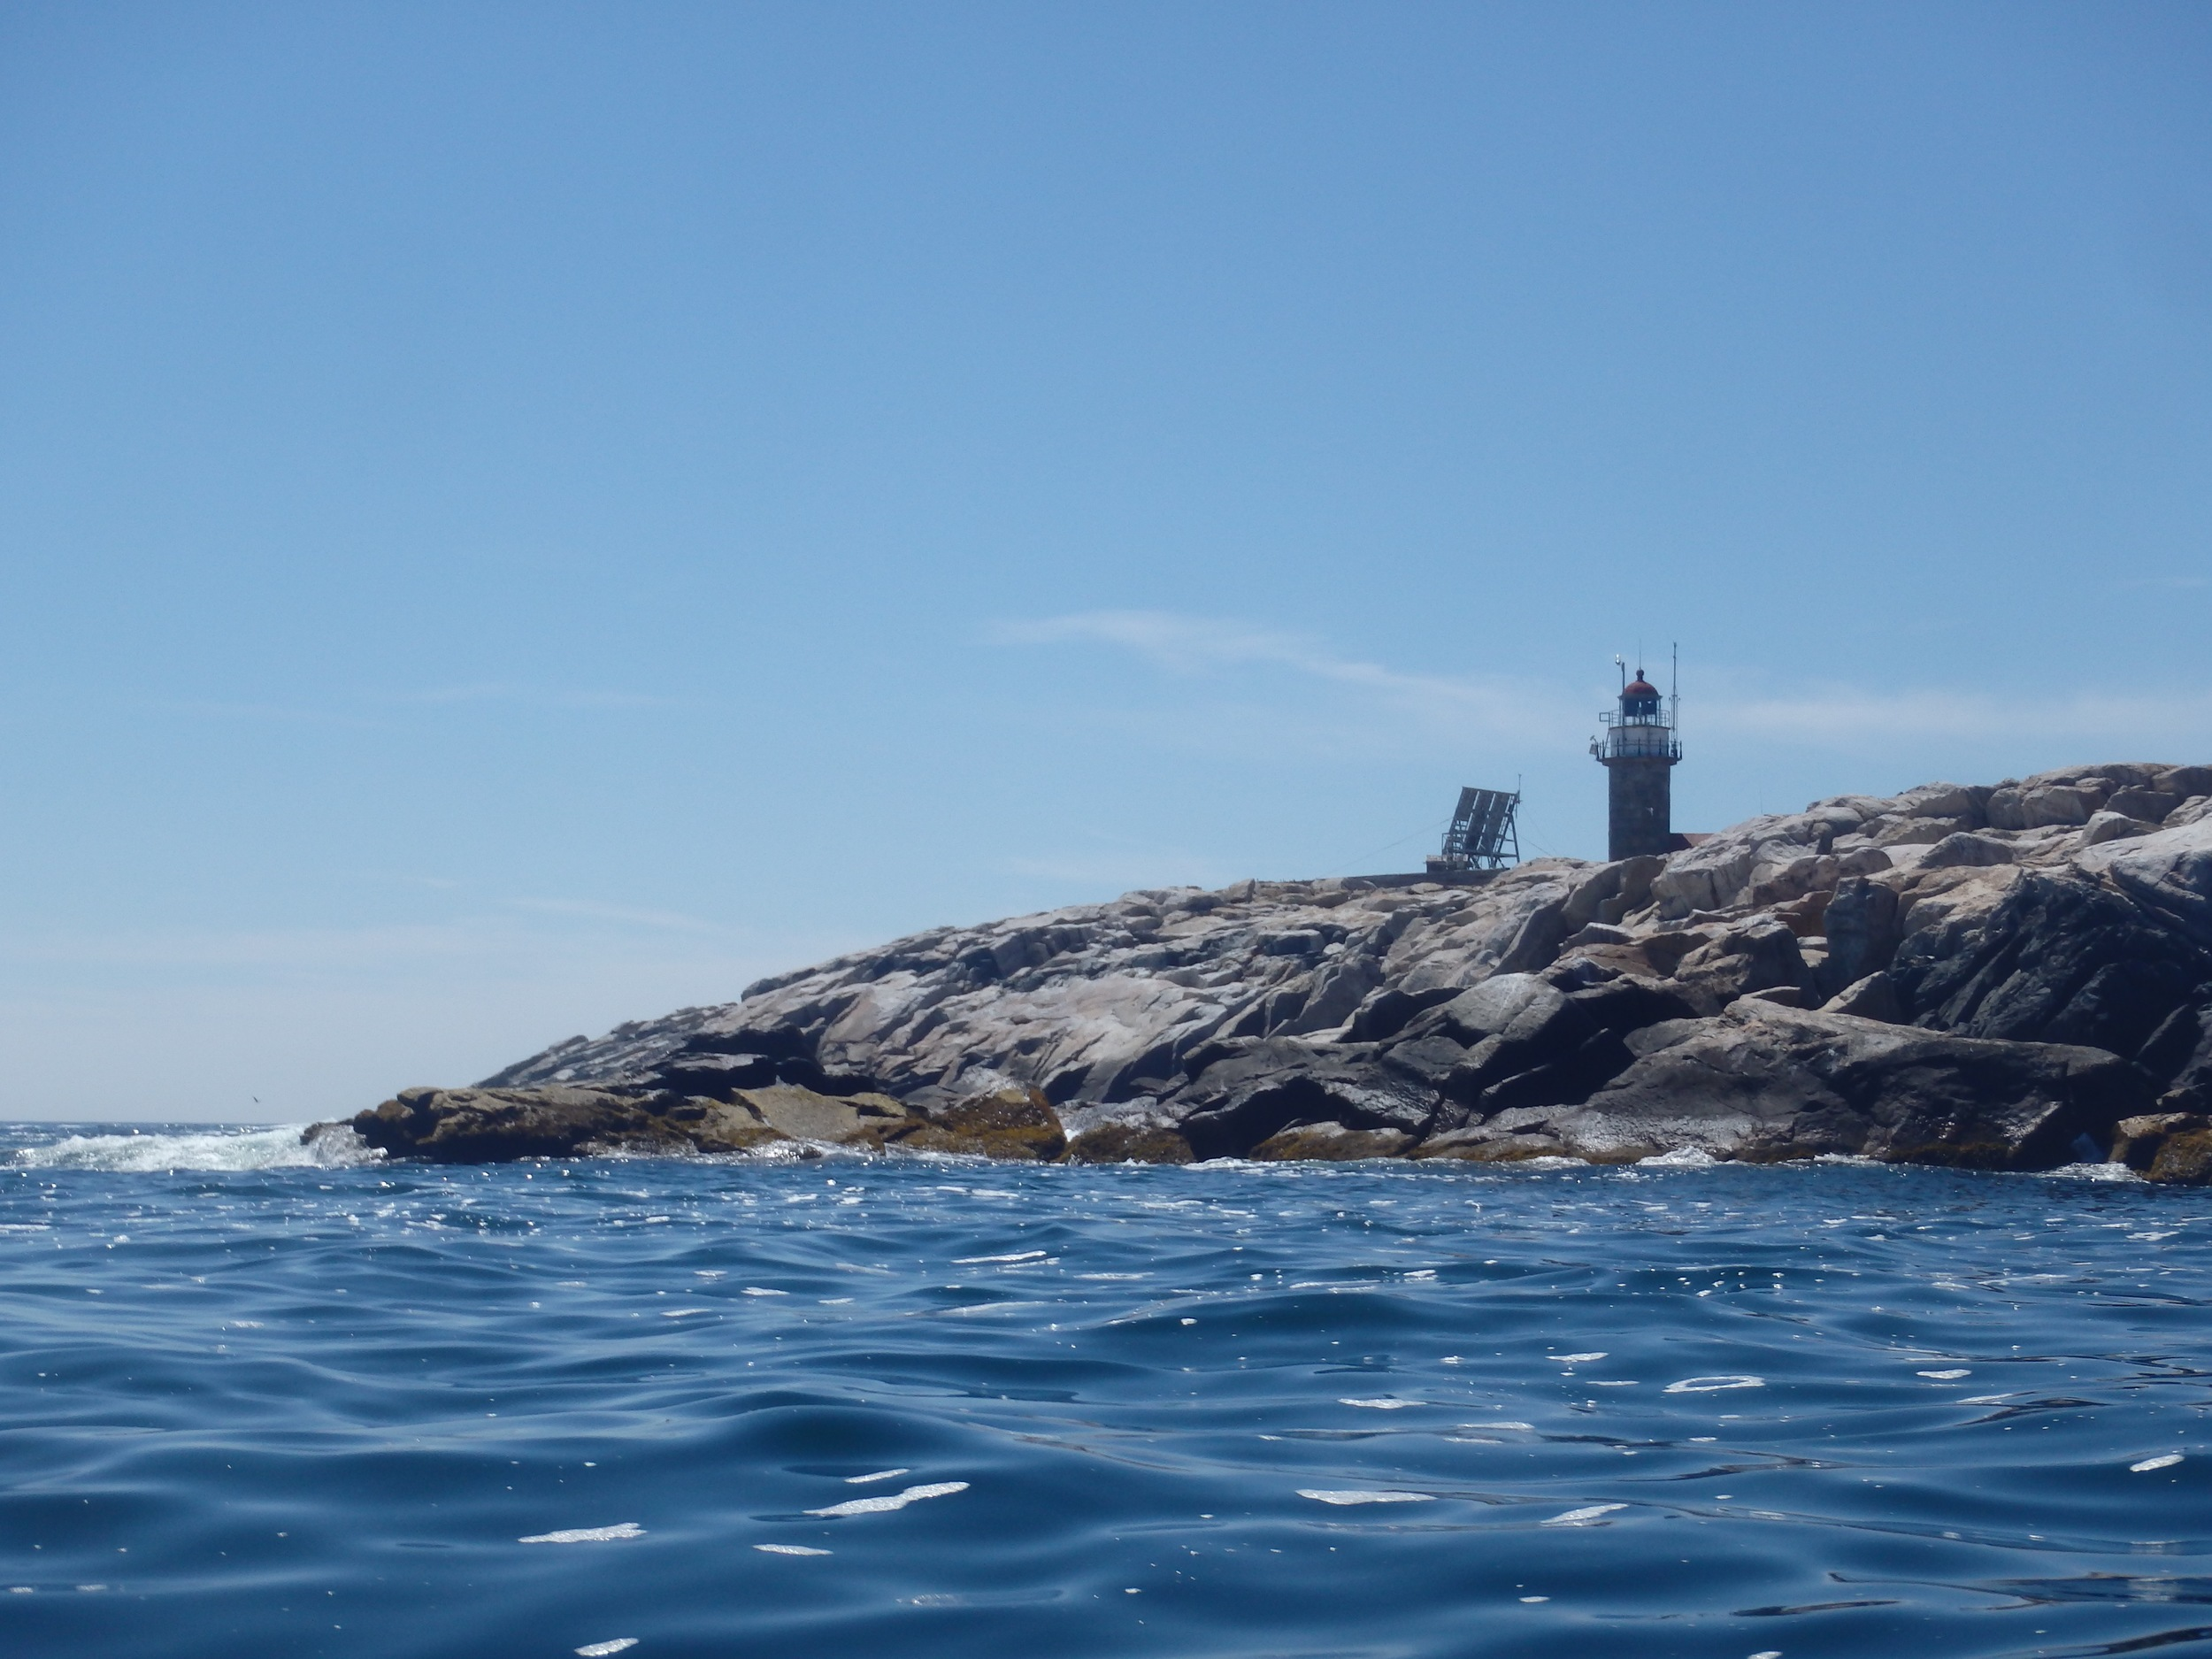 Approaching the southern tip